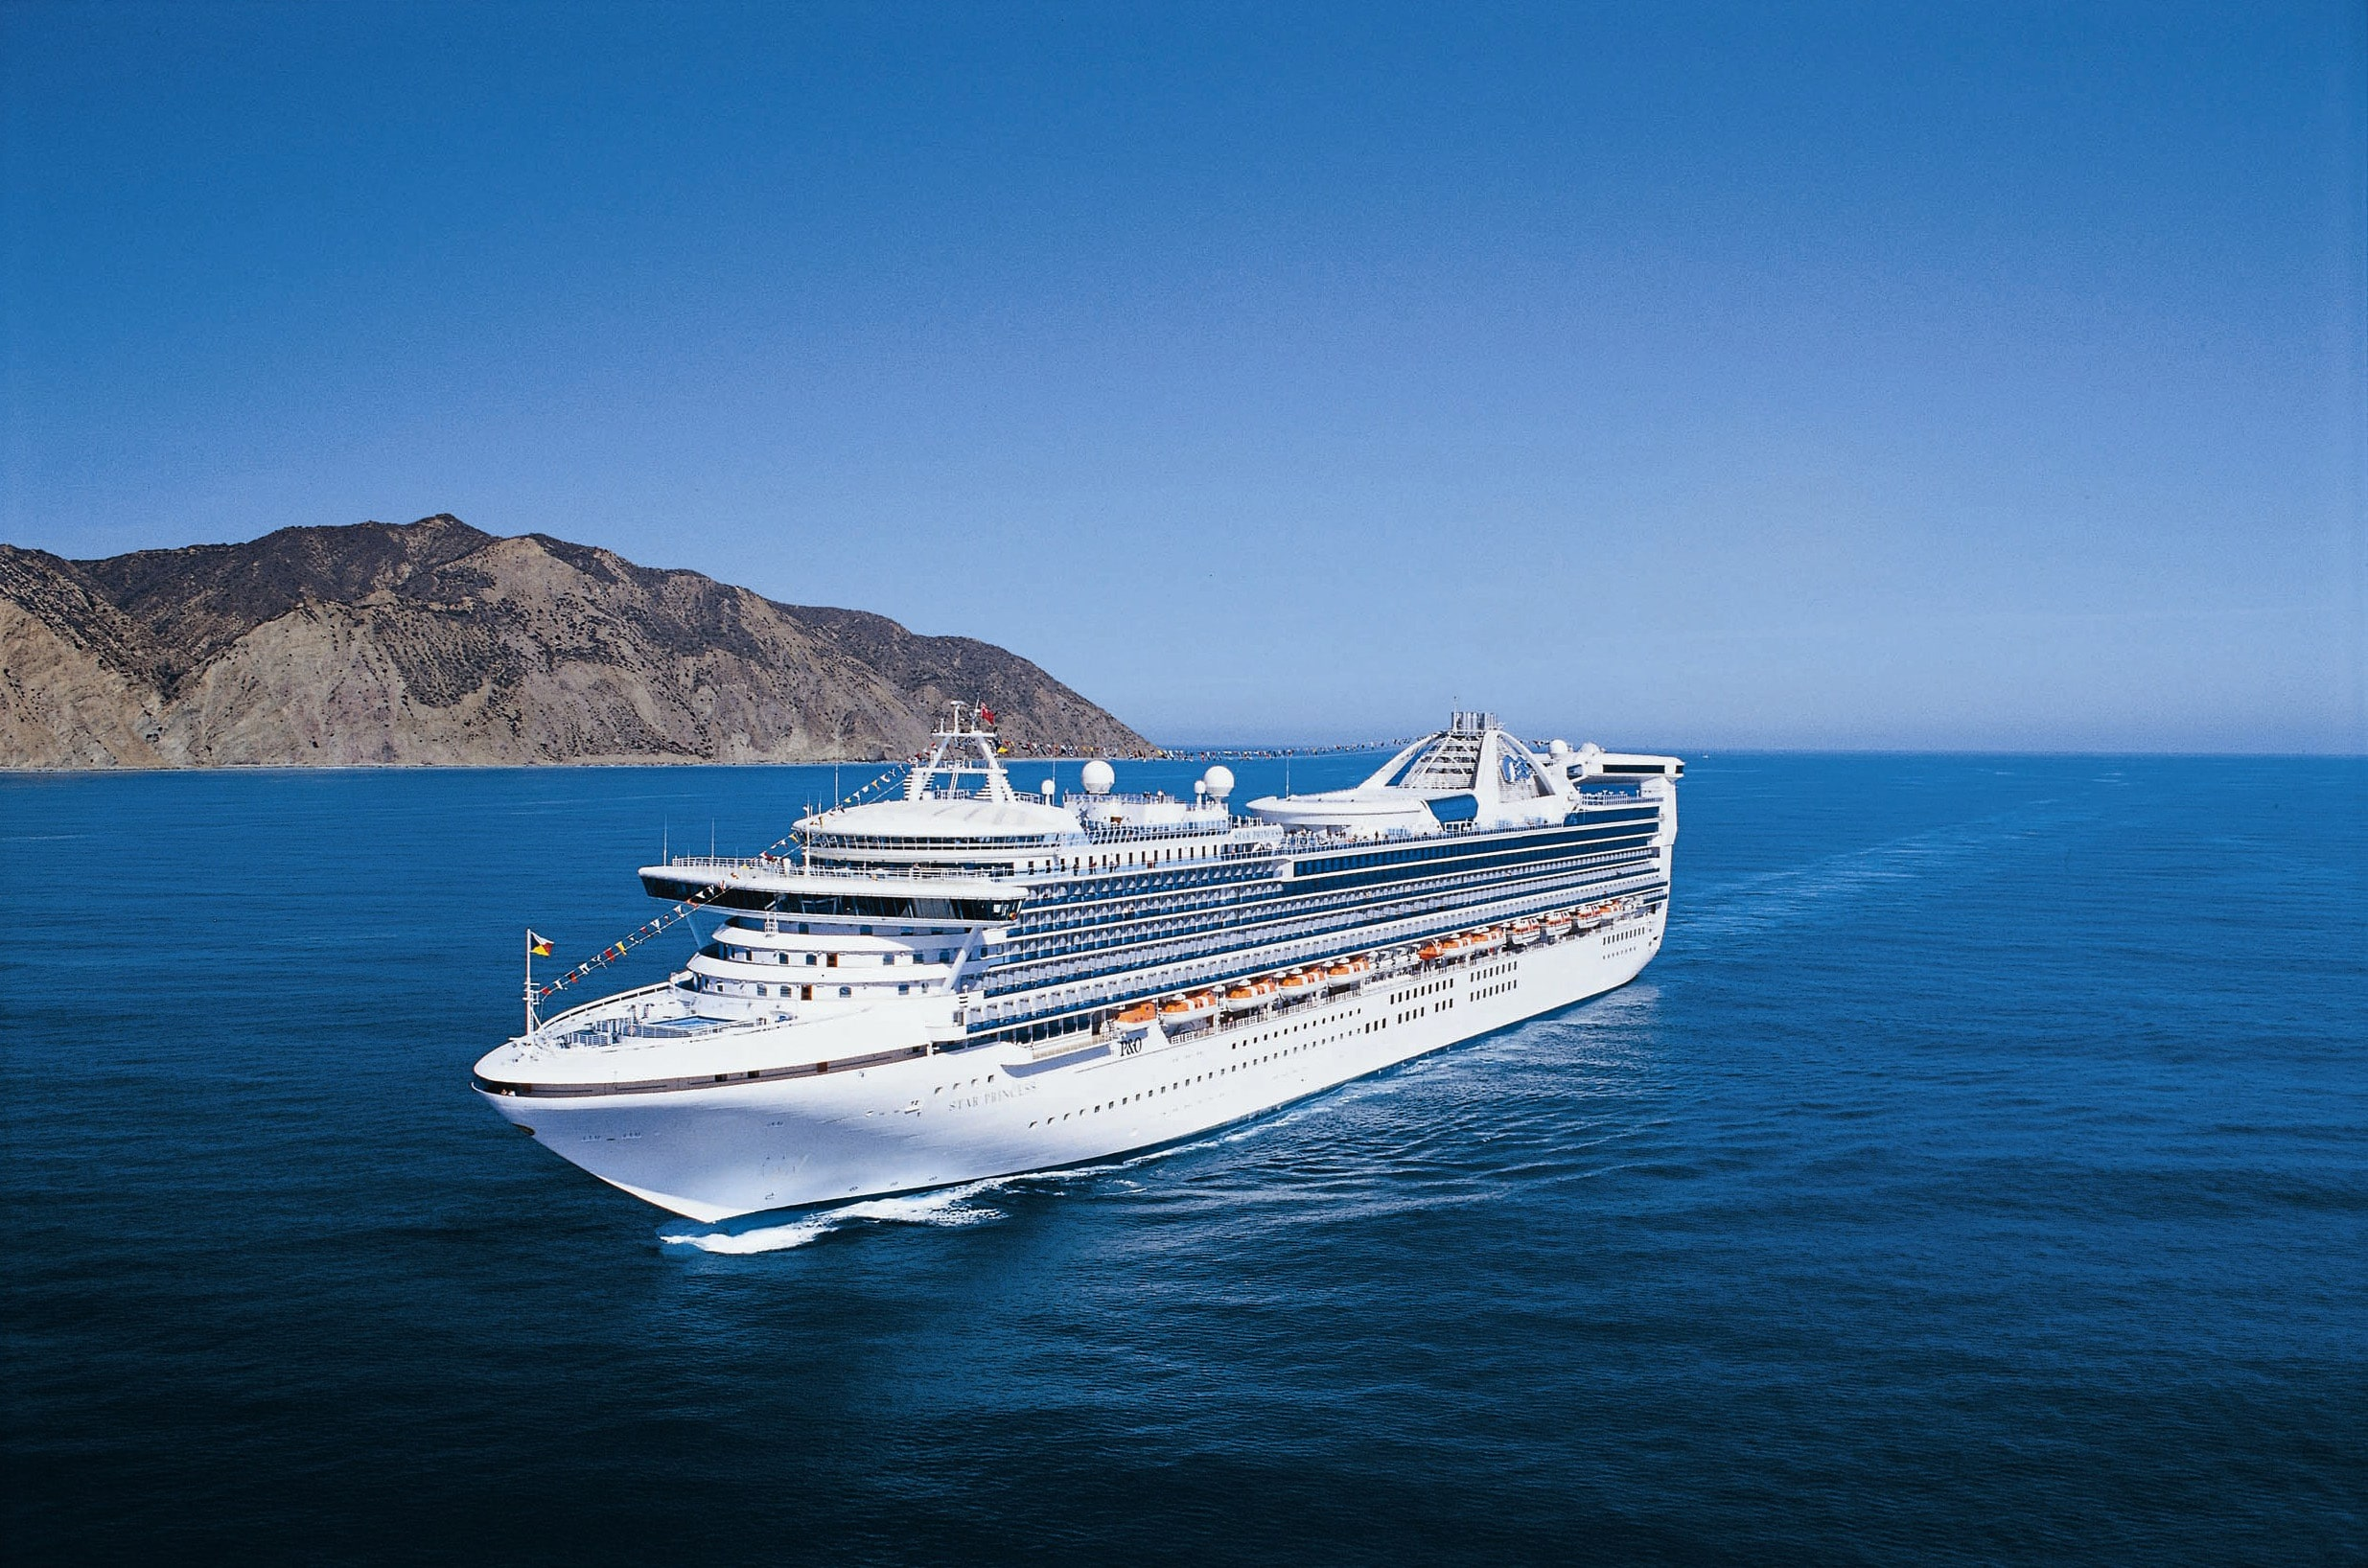 princess cruise Princess cruises offers quality, contemporary cruising with a balance of tradition and innovation.